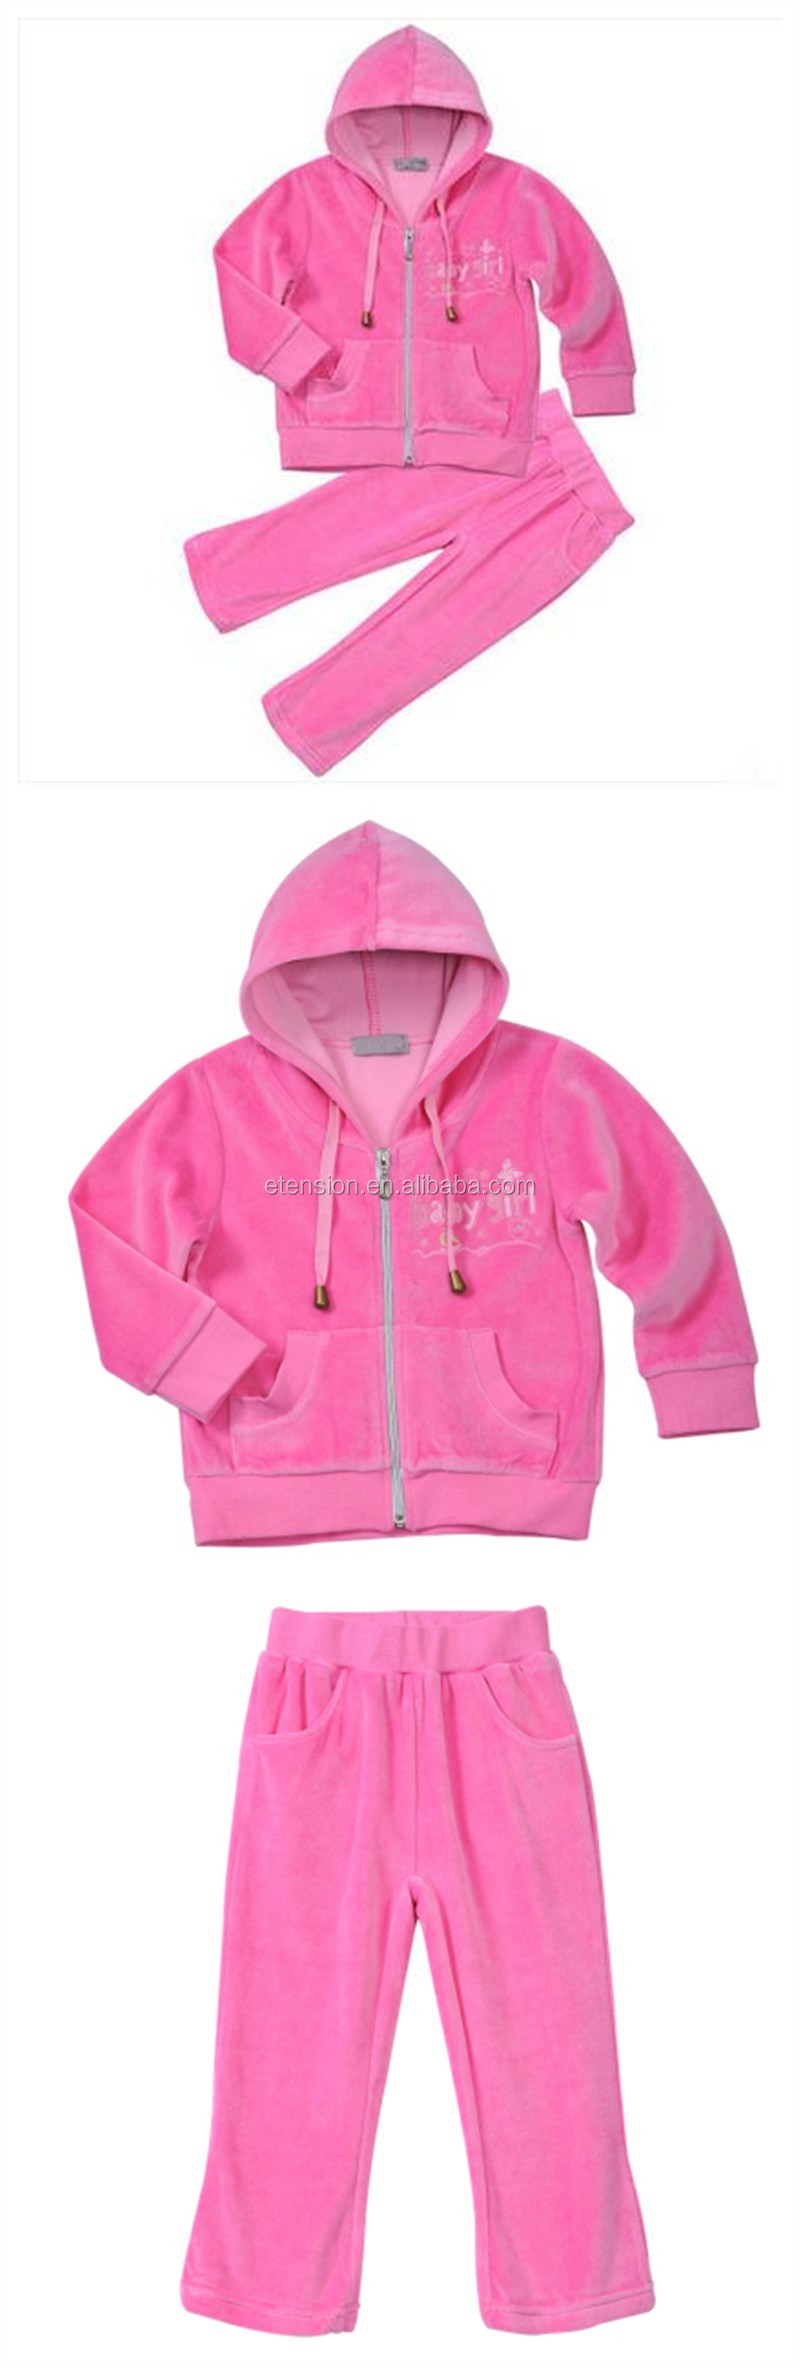 Kids Pink Embroidery Lovely Girls Sport Hood Coat Suit